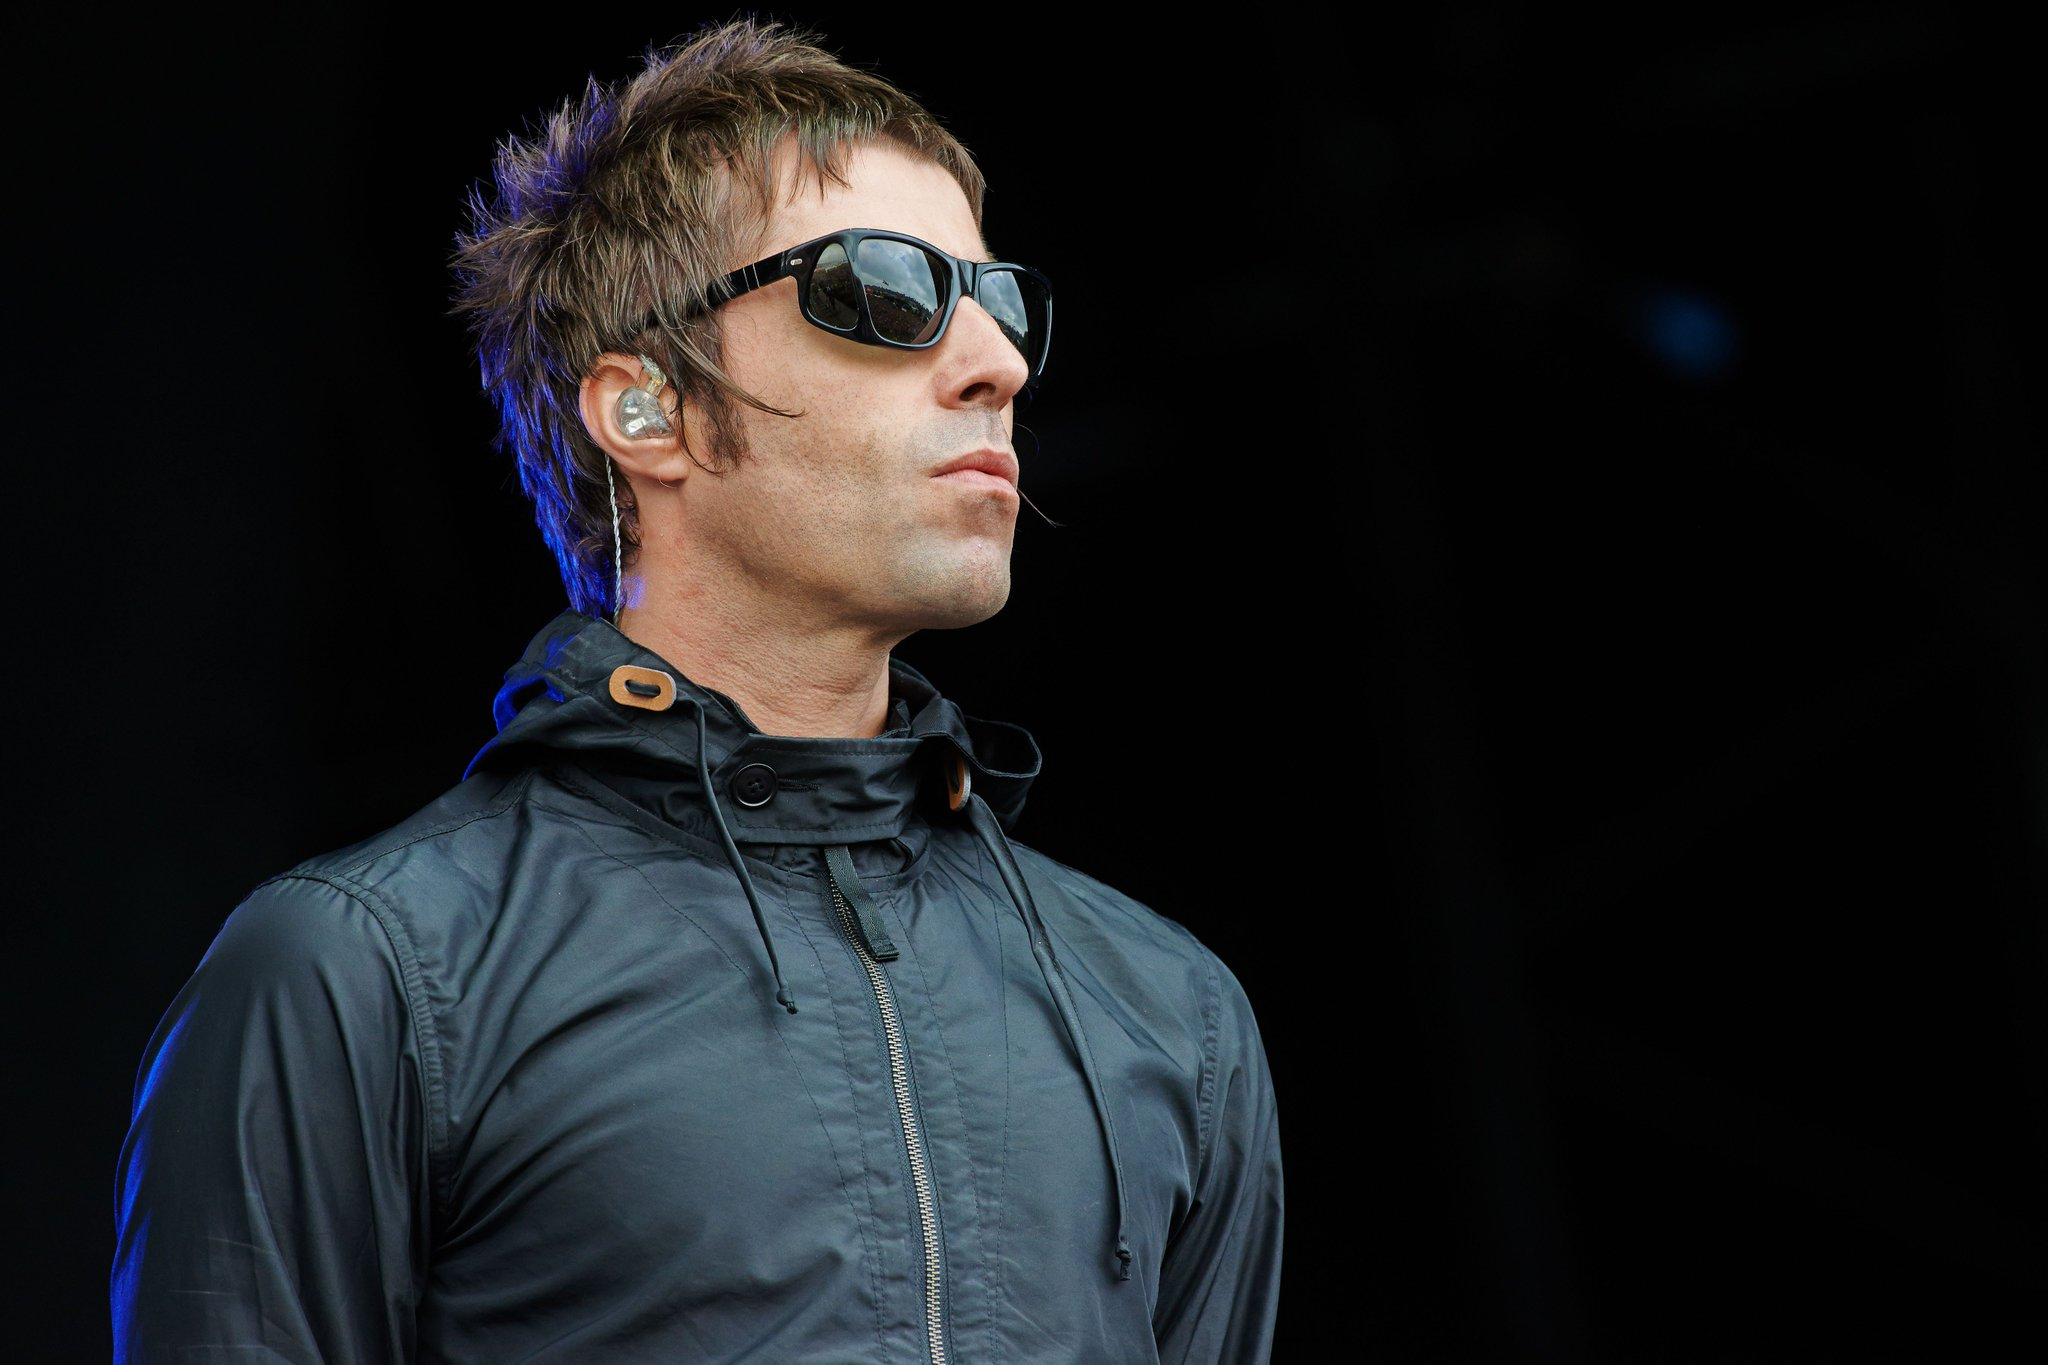 .@LiamGallagher kicks off Manchester solo show with 'Rock N Roll Star' https://t.co/H8TBxVzmcY https://t.co/9sMg1iIeLf